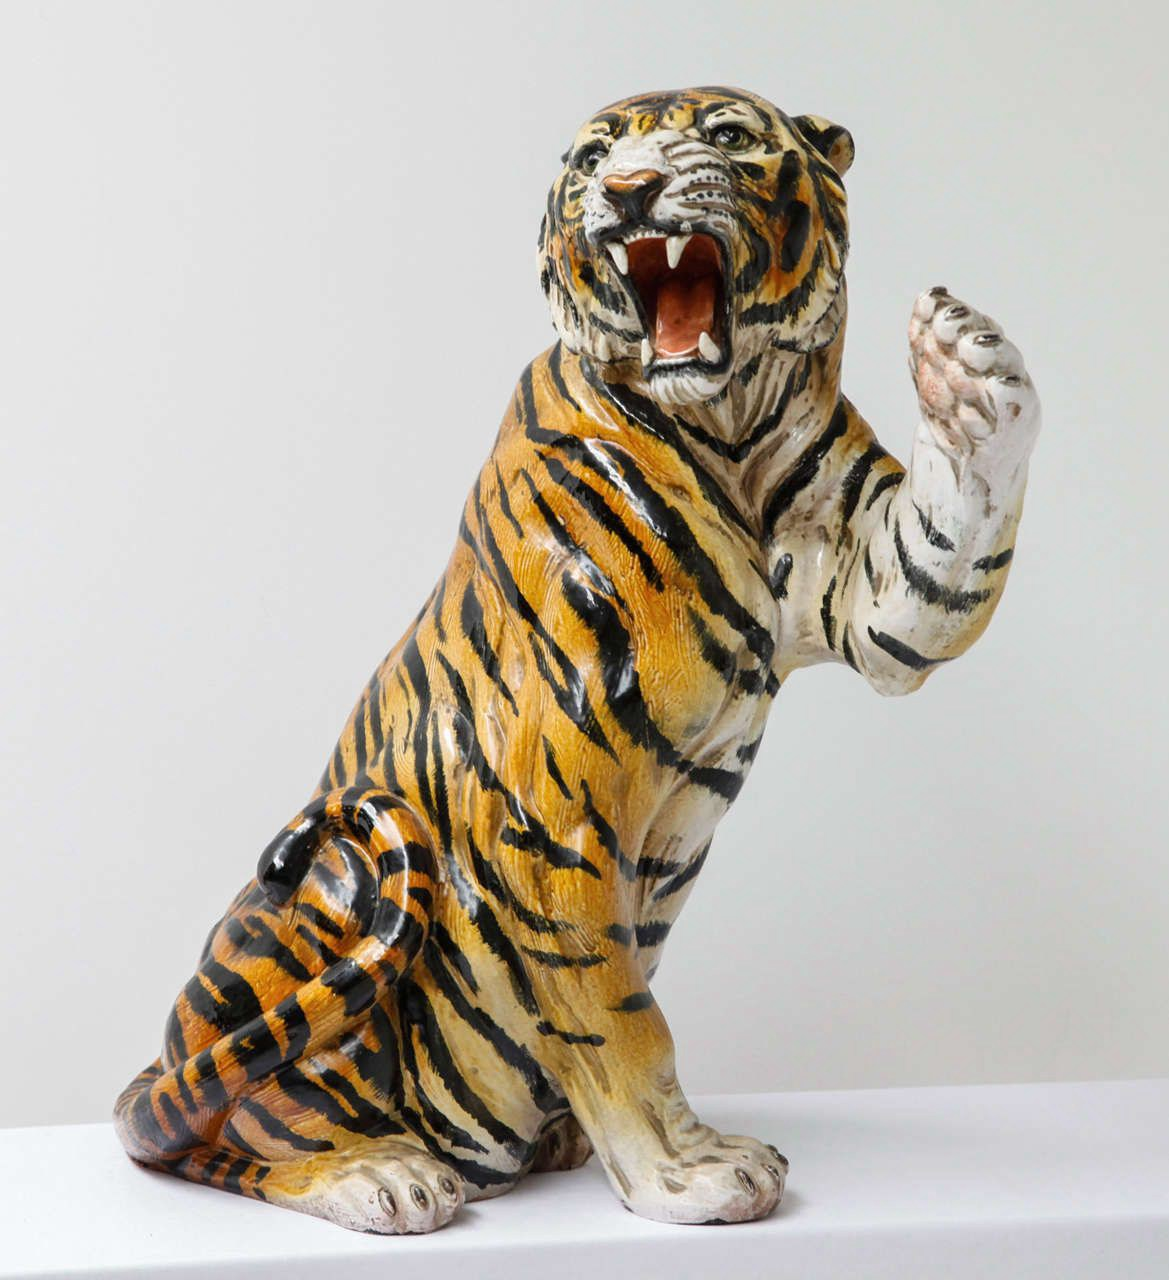 life size ceramic tiger sculpture